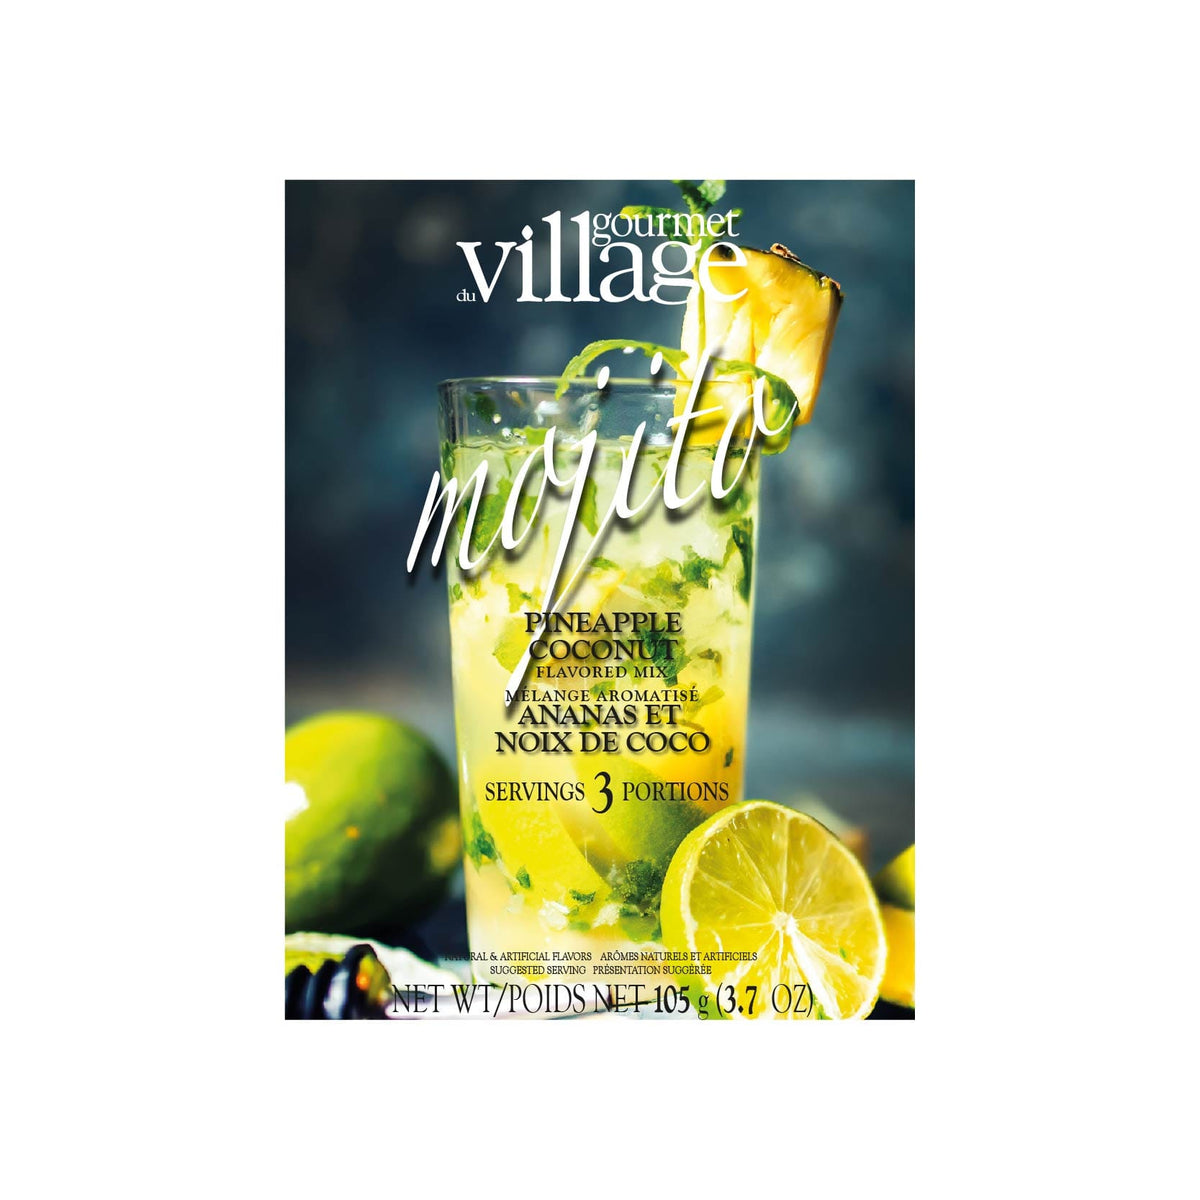 Gourmet Village Mojito Pineapple Coconut